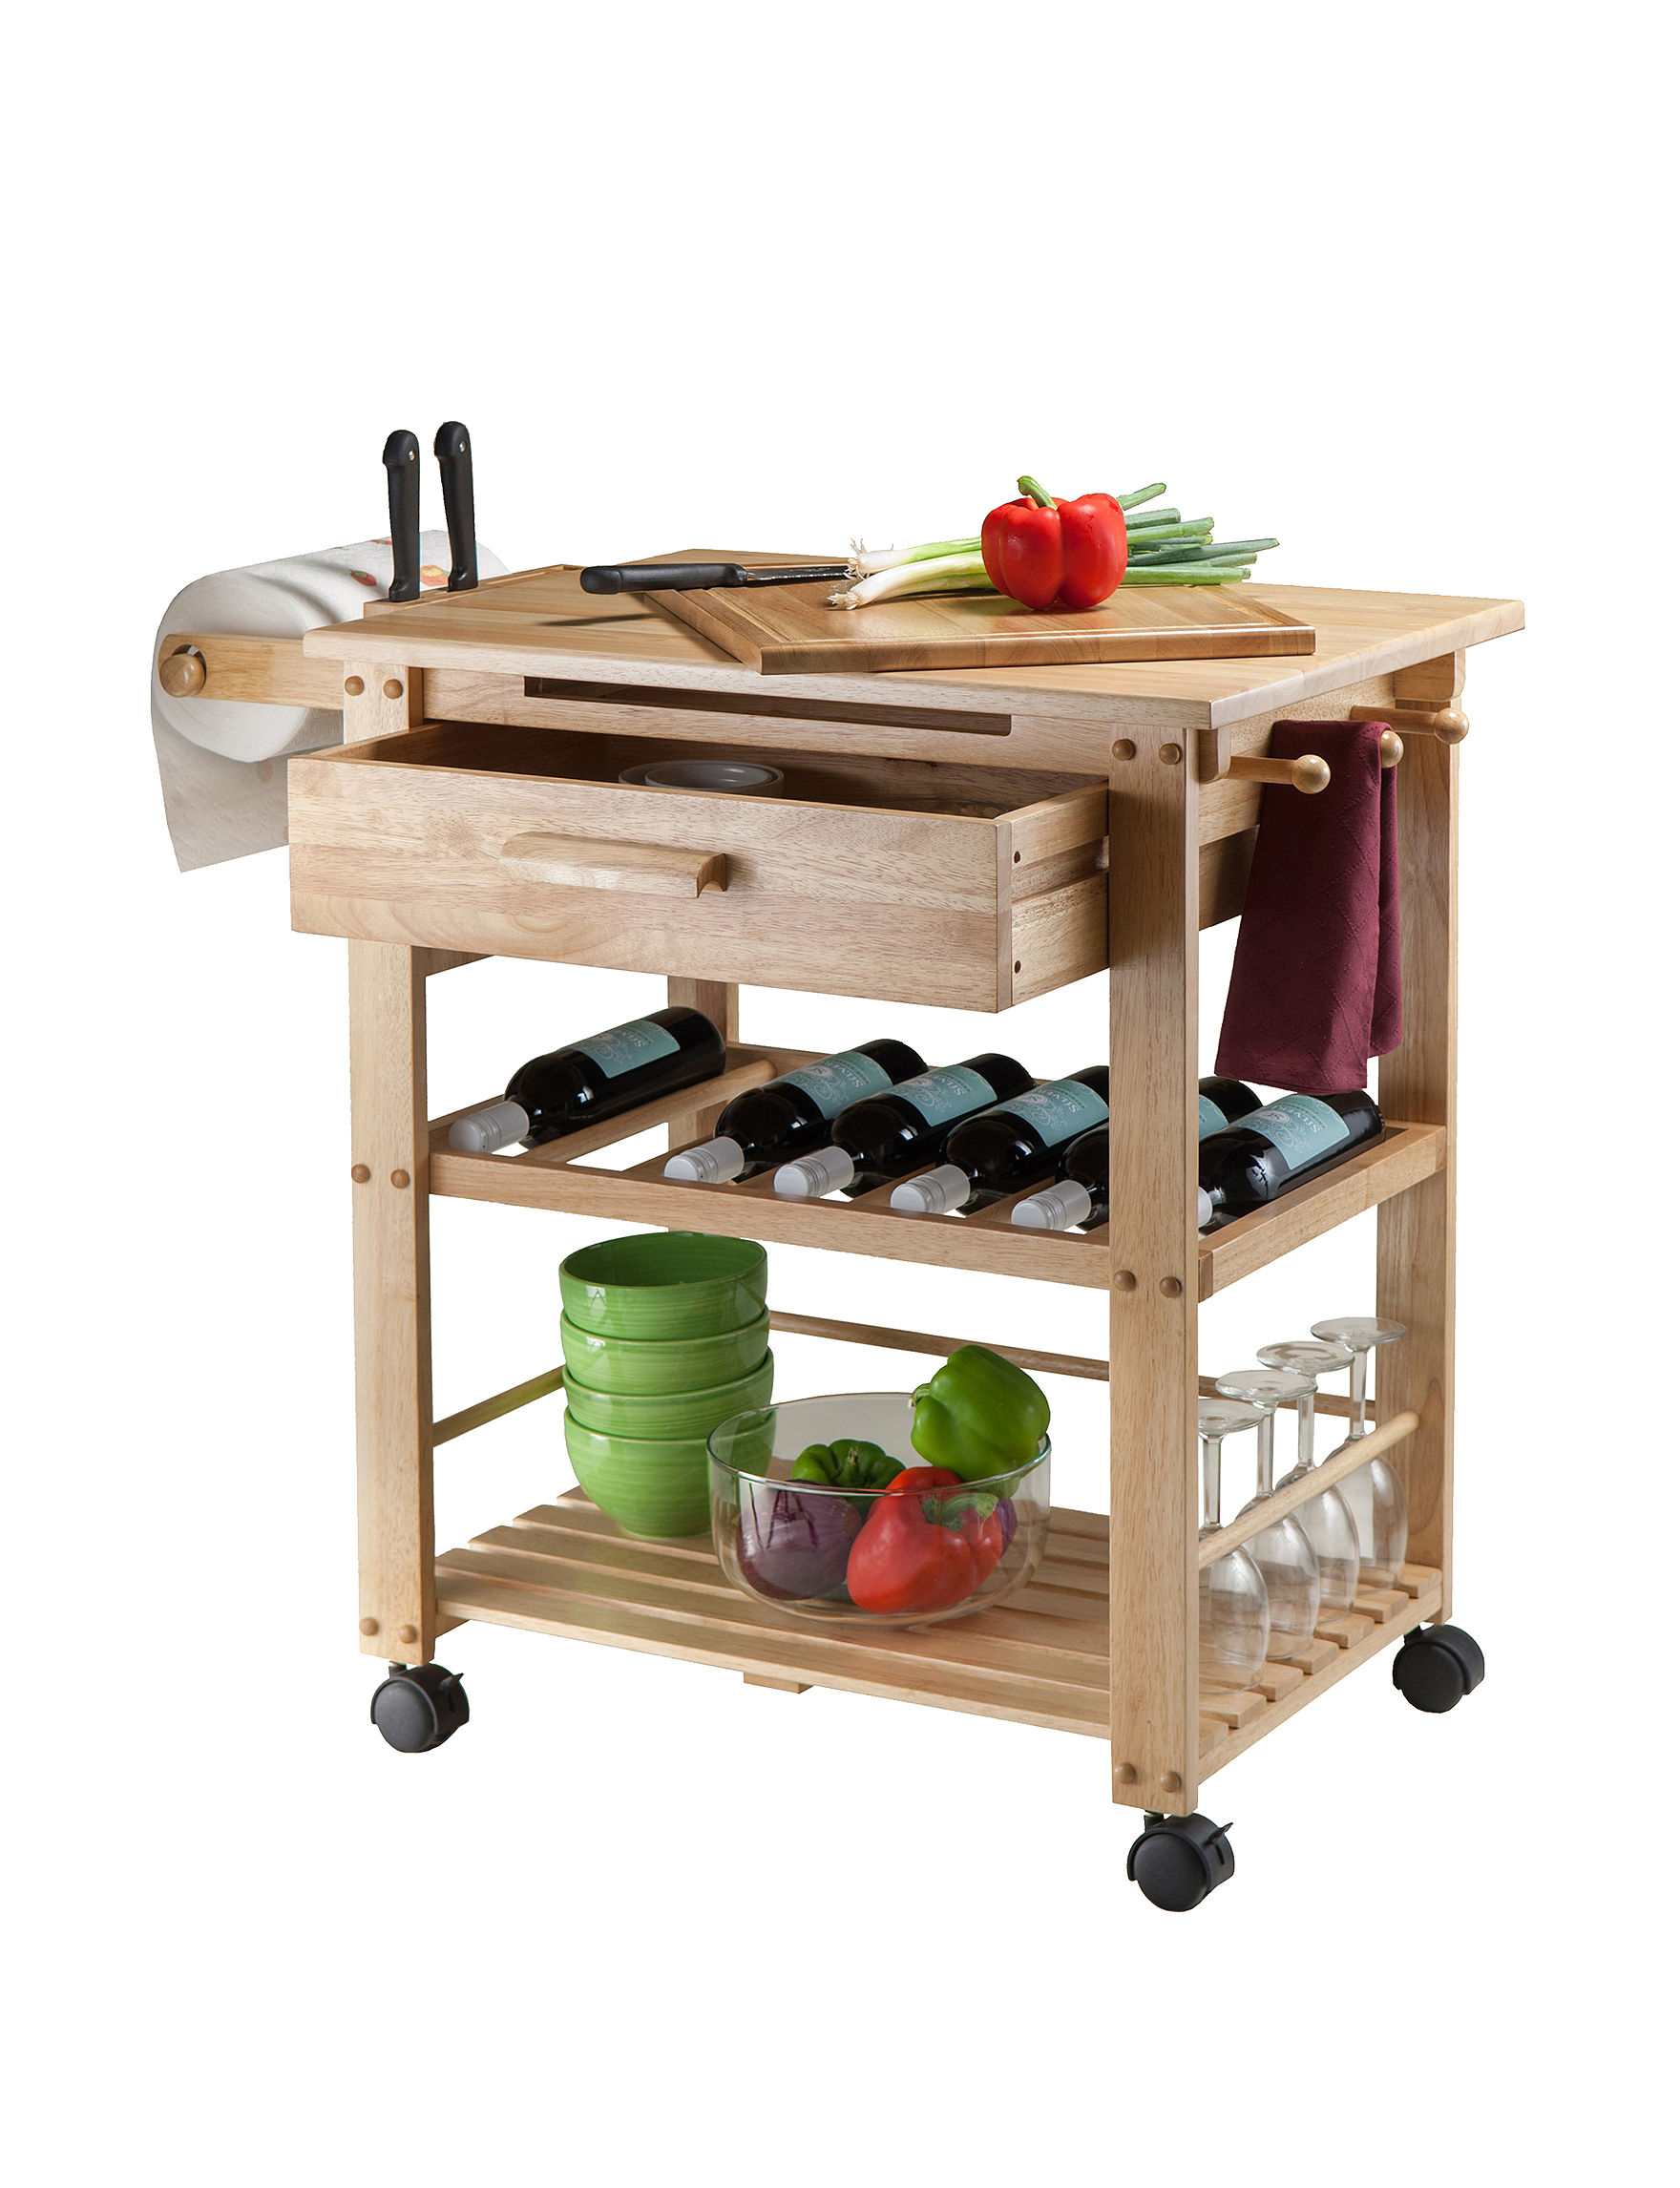 Winsome Tan Kitchen Islands & Carts Kitchen & Dining Furniture